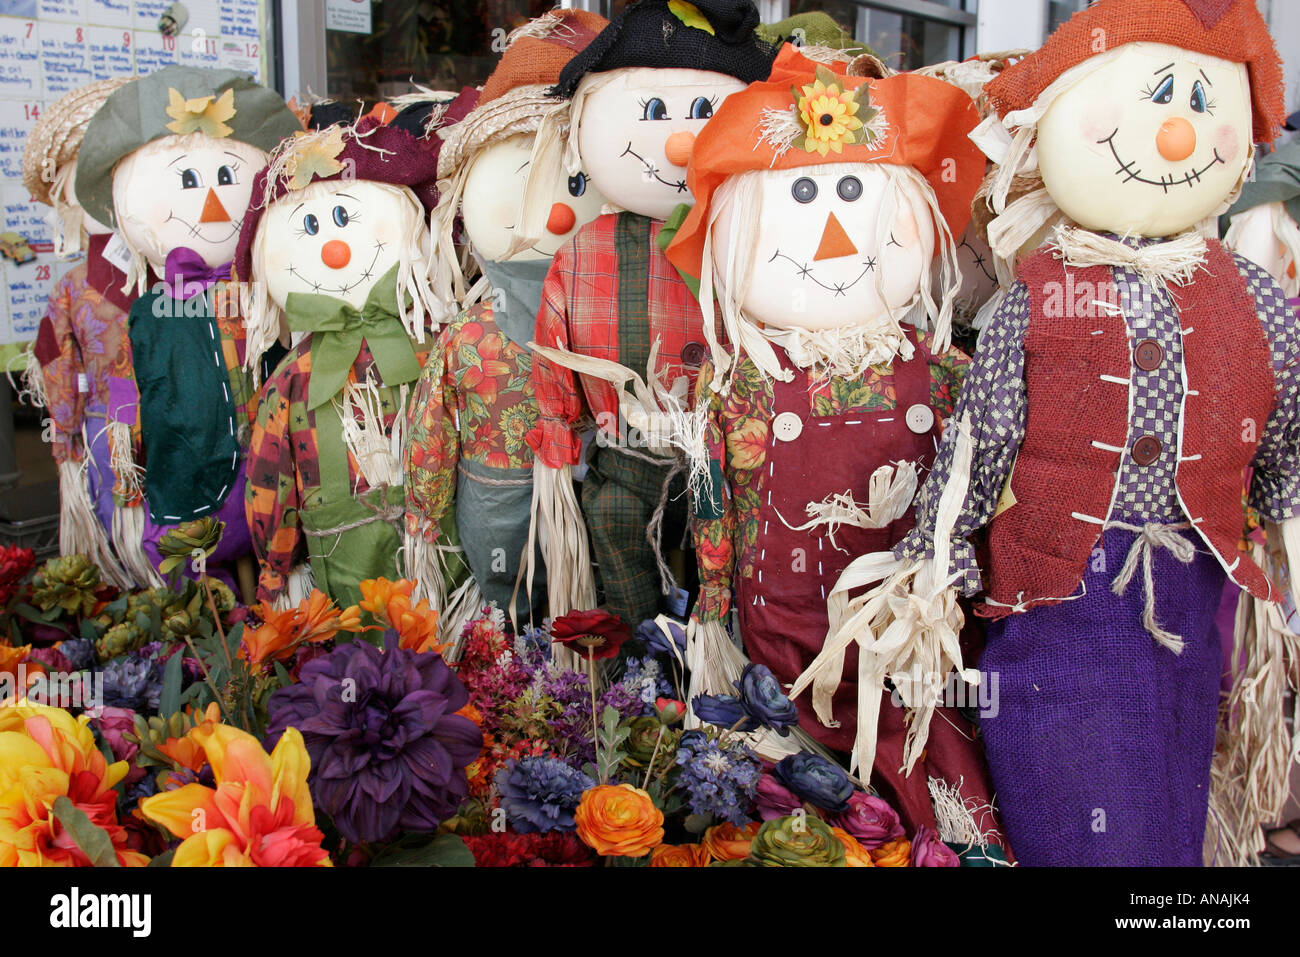 Miami florida south dixie highway scarecrows silk flowers fall miami florida south dixie highway scarecrows silk flowers fall autumn mightylinksfo